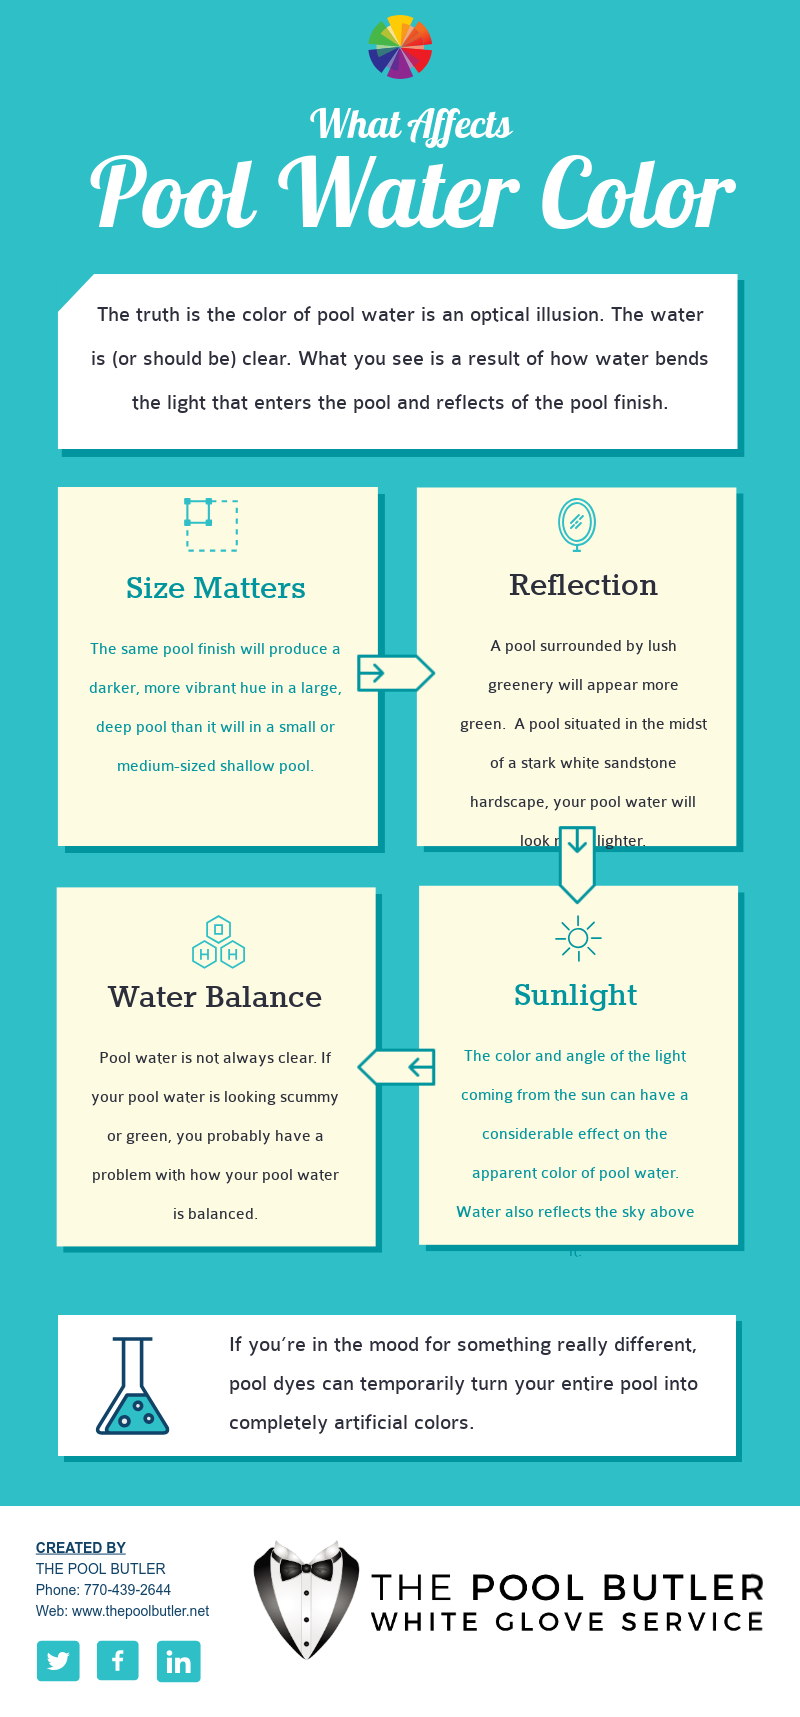 What Affects Pool Water Color [infographic]